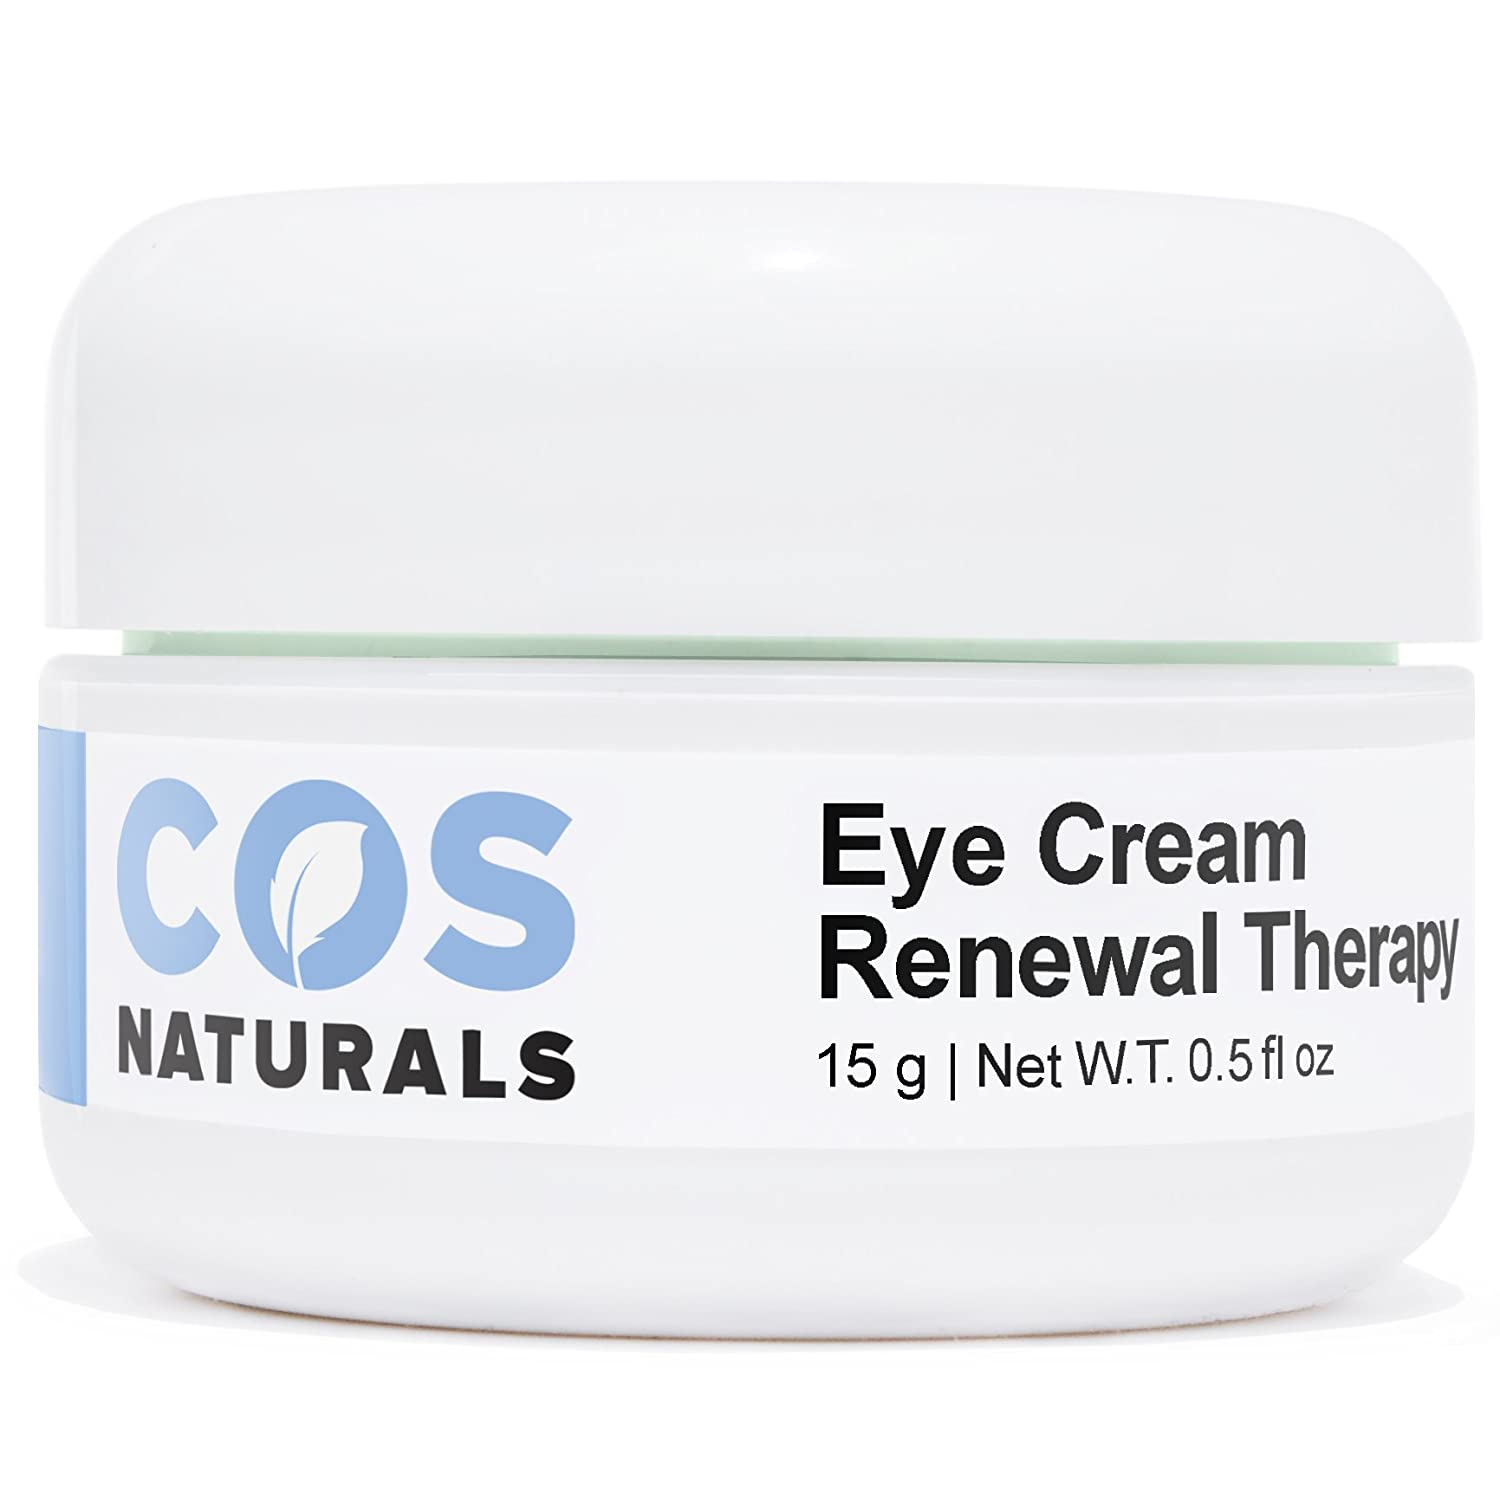 Best Eye Cream Renewal Therapy Dermatologist Recommended For Dark